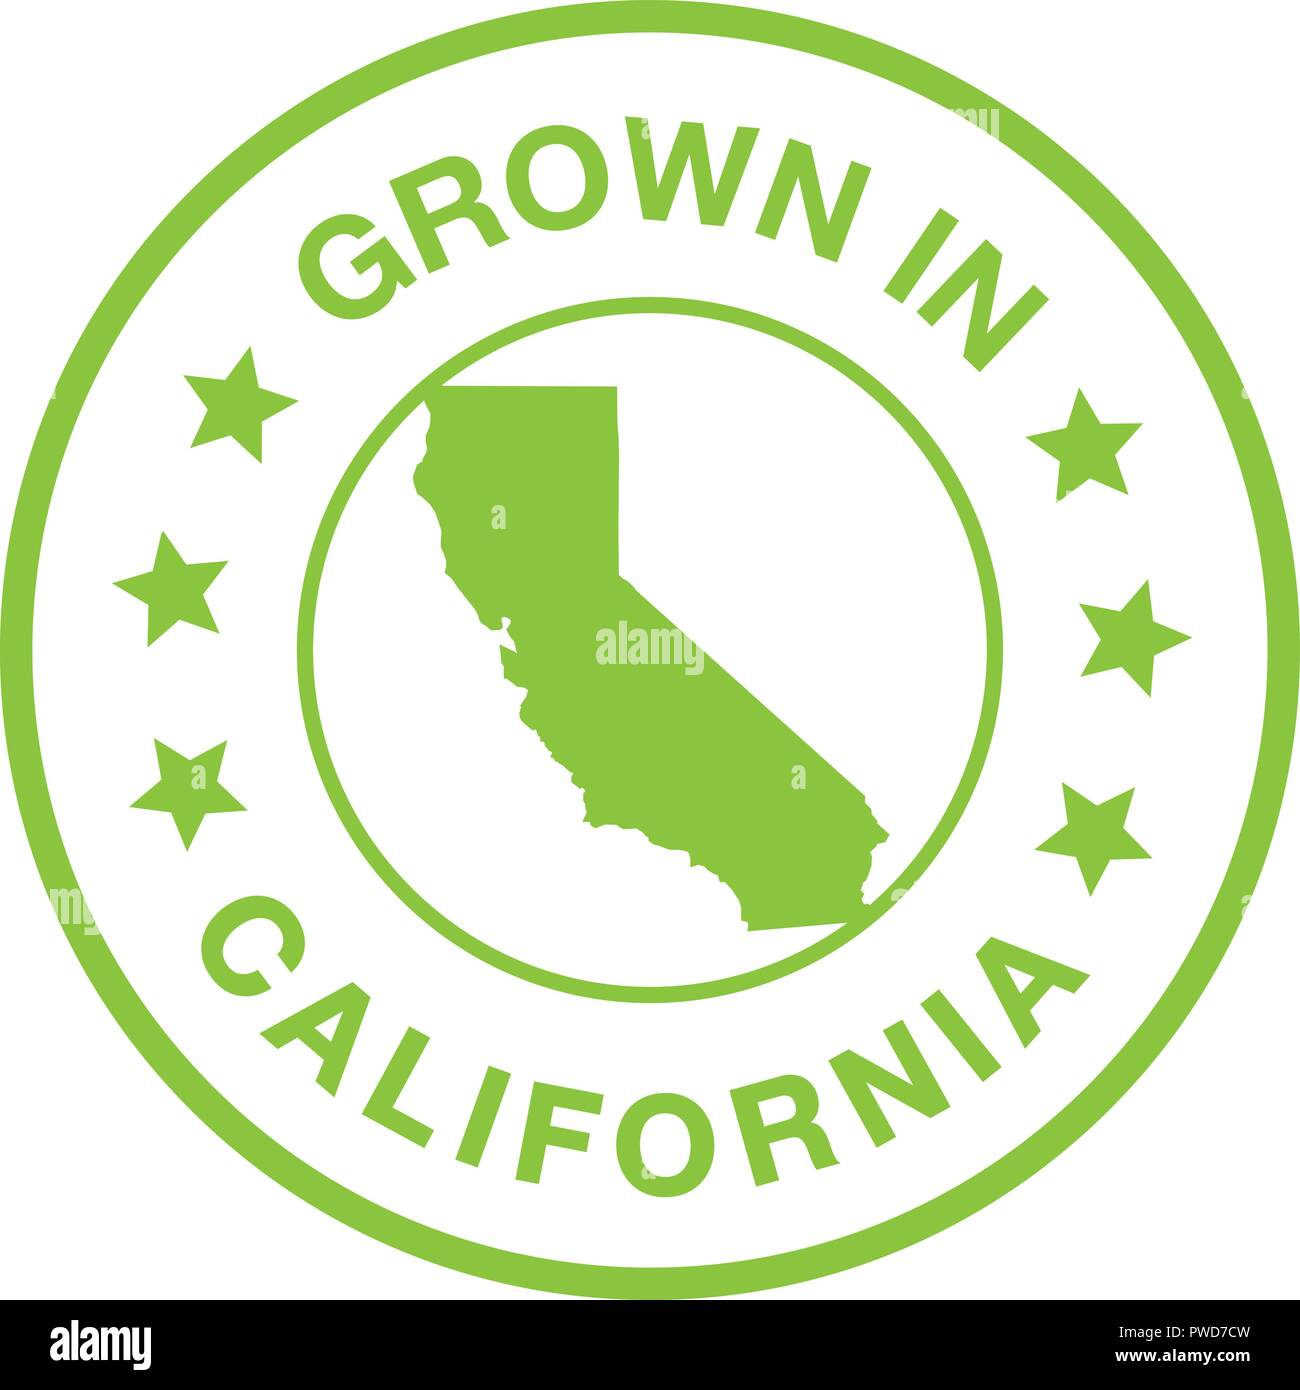 Grown In California Seal. Green stamp with California outline showing that your product is grown in California. Isolated green vector on white back. - Stock Image